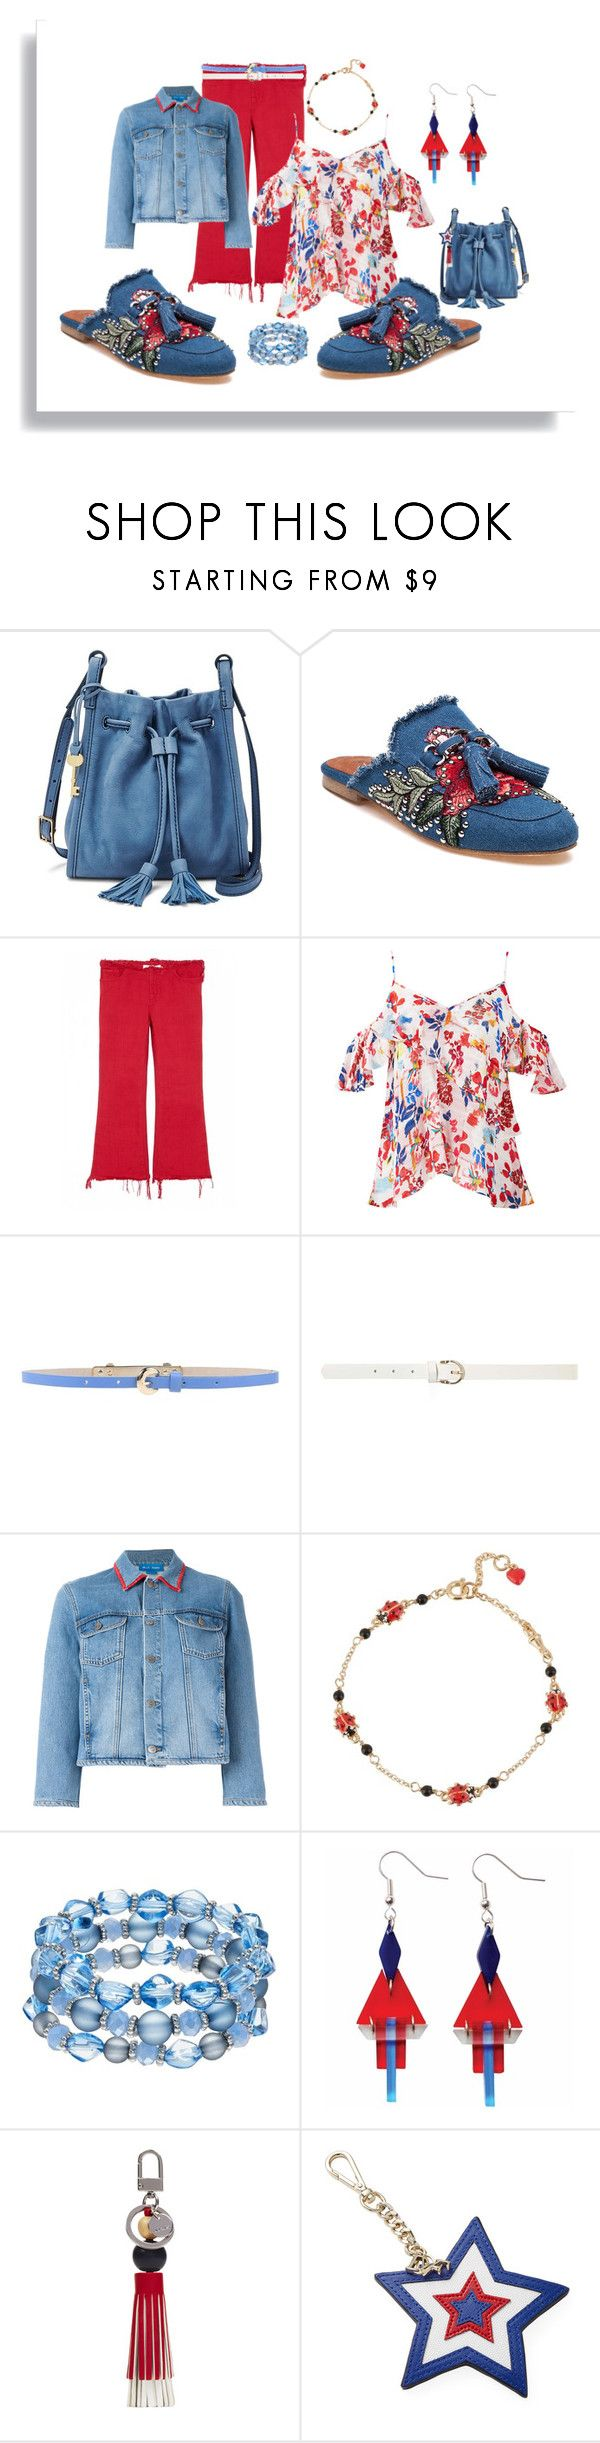 """""""Roses on the feet"""" by kelli-bailey-ouimet ❤ liked on Polyvore featuring FOSSIL, Jeffrey Campbell, Marques'Almeida, Tanya Taylor, KI6? Who Are You?, Dorothy Perkins, M.i.h Jeans, Les Néréides, Toolally and Nine West"""